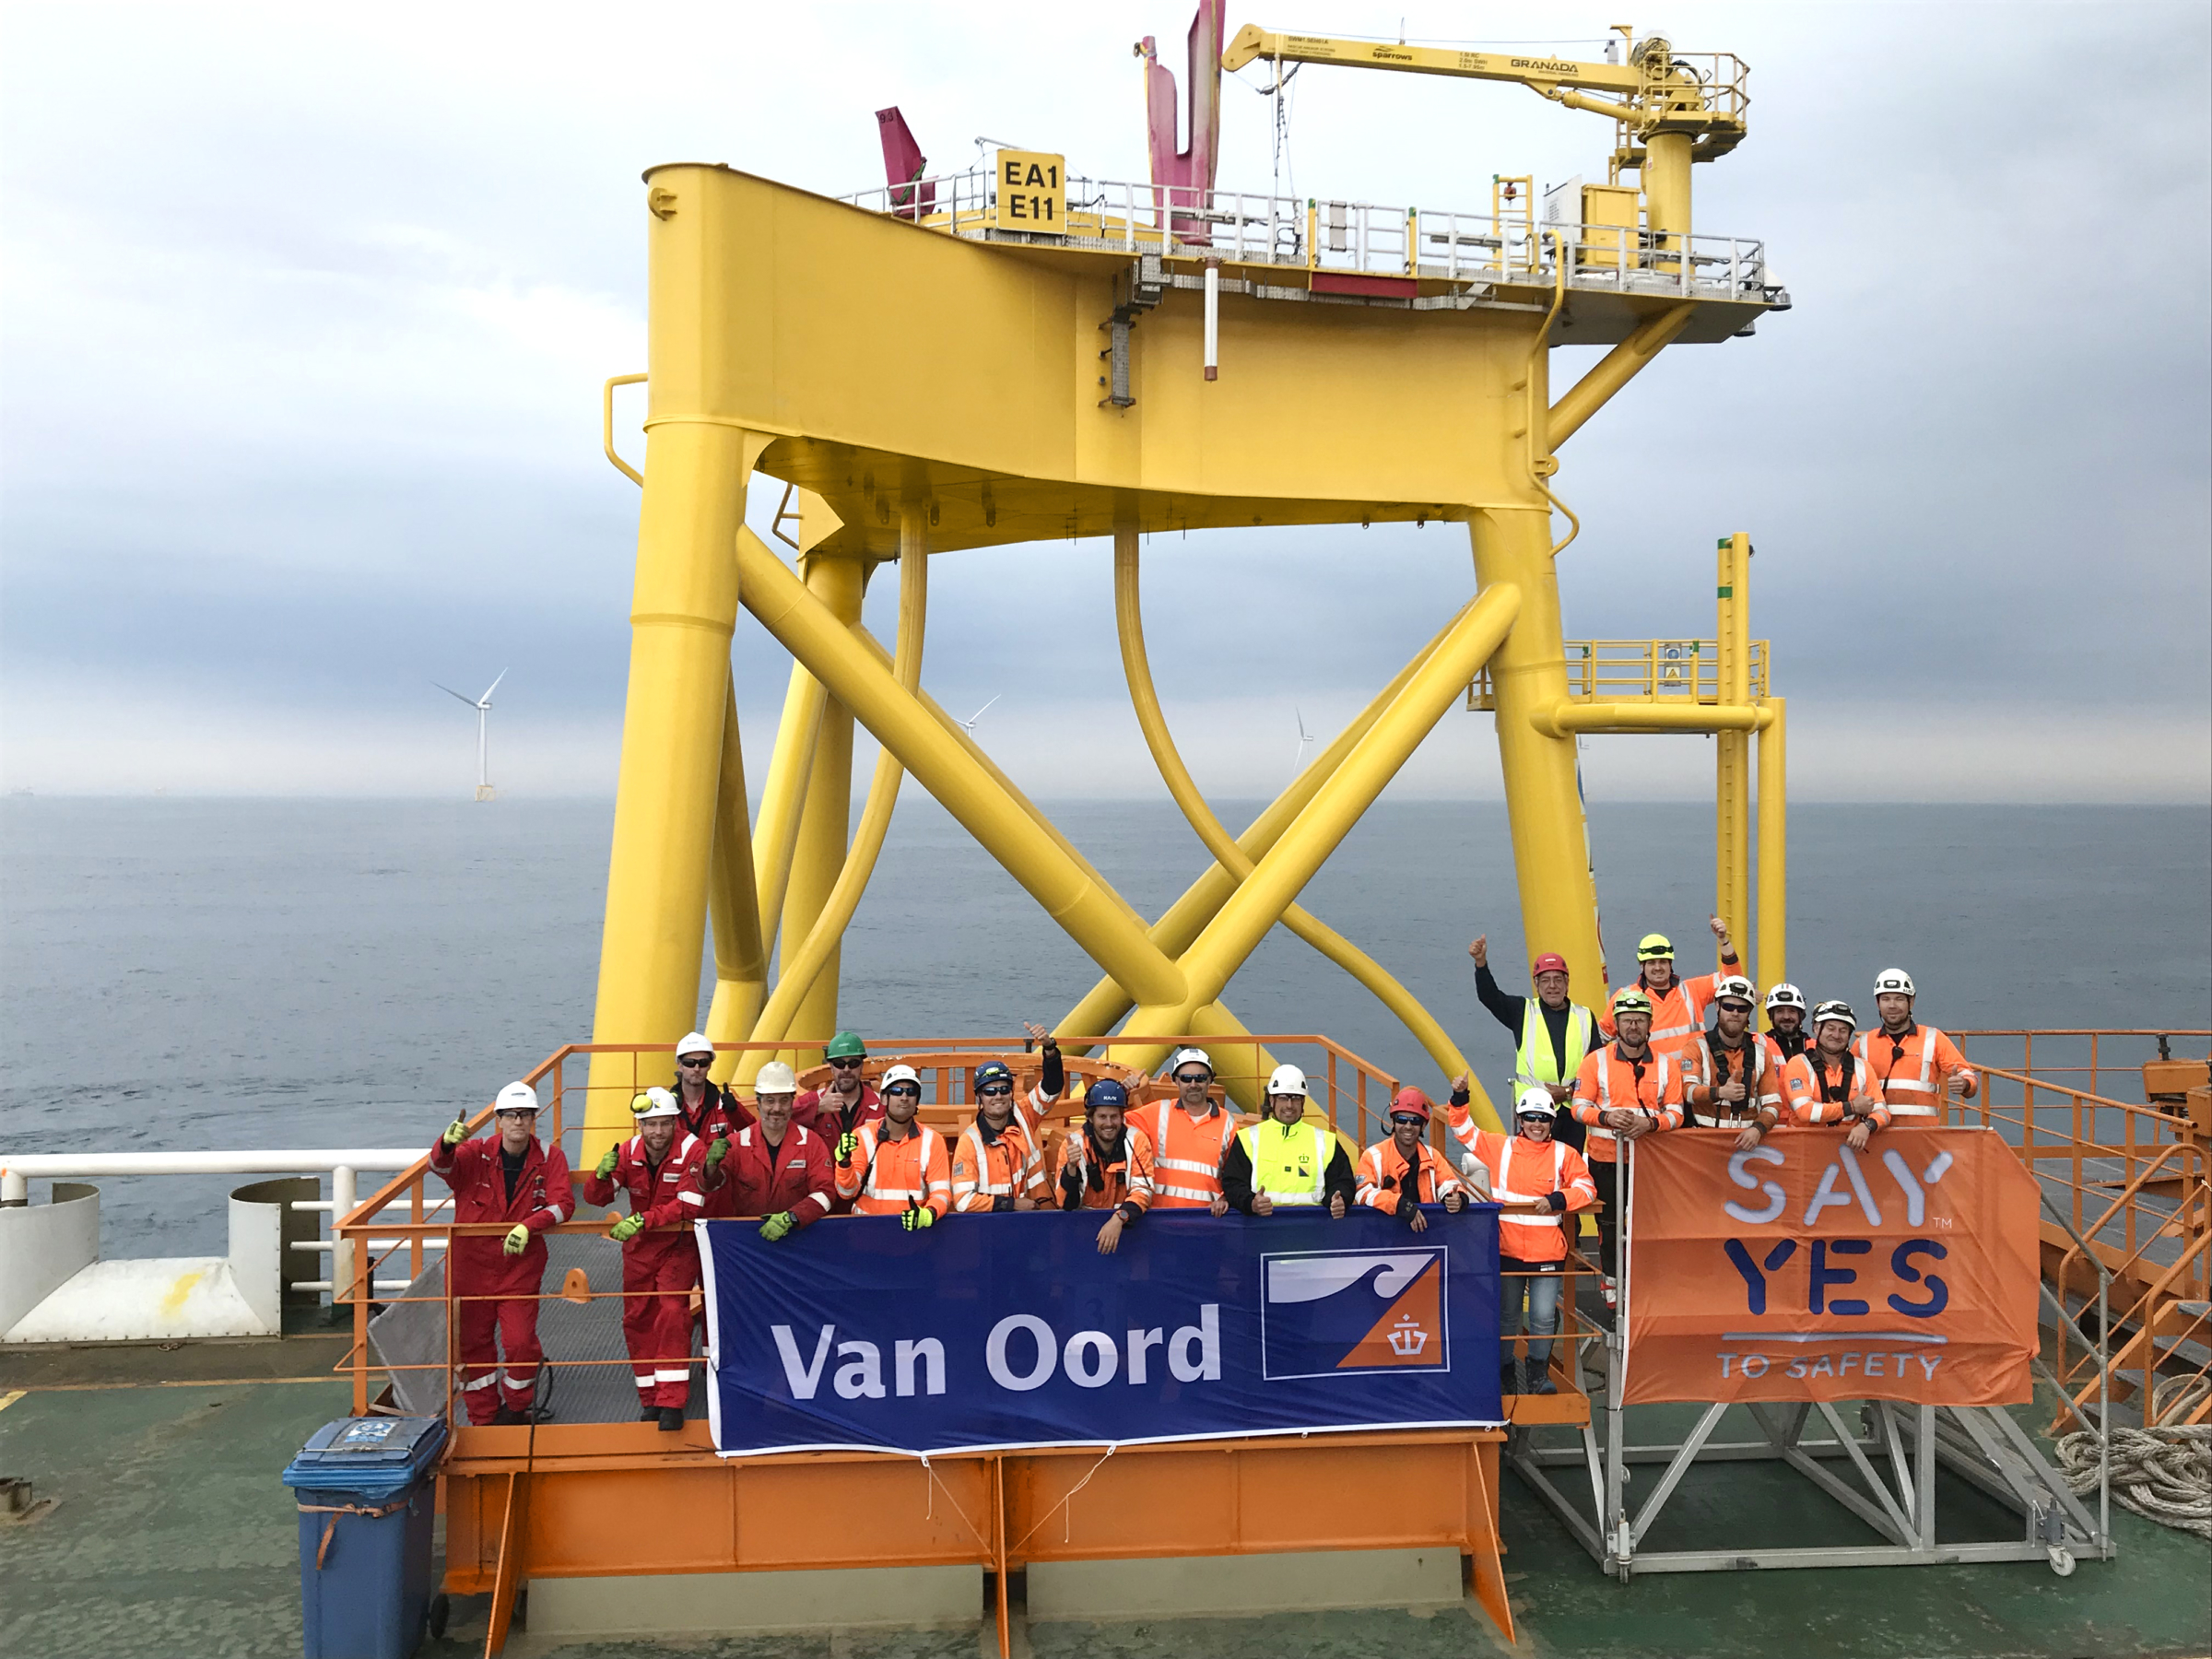 Van Oord completes foundations for offshore wind farm East Anglia ONE